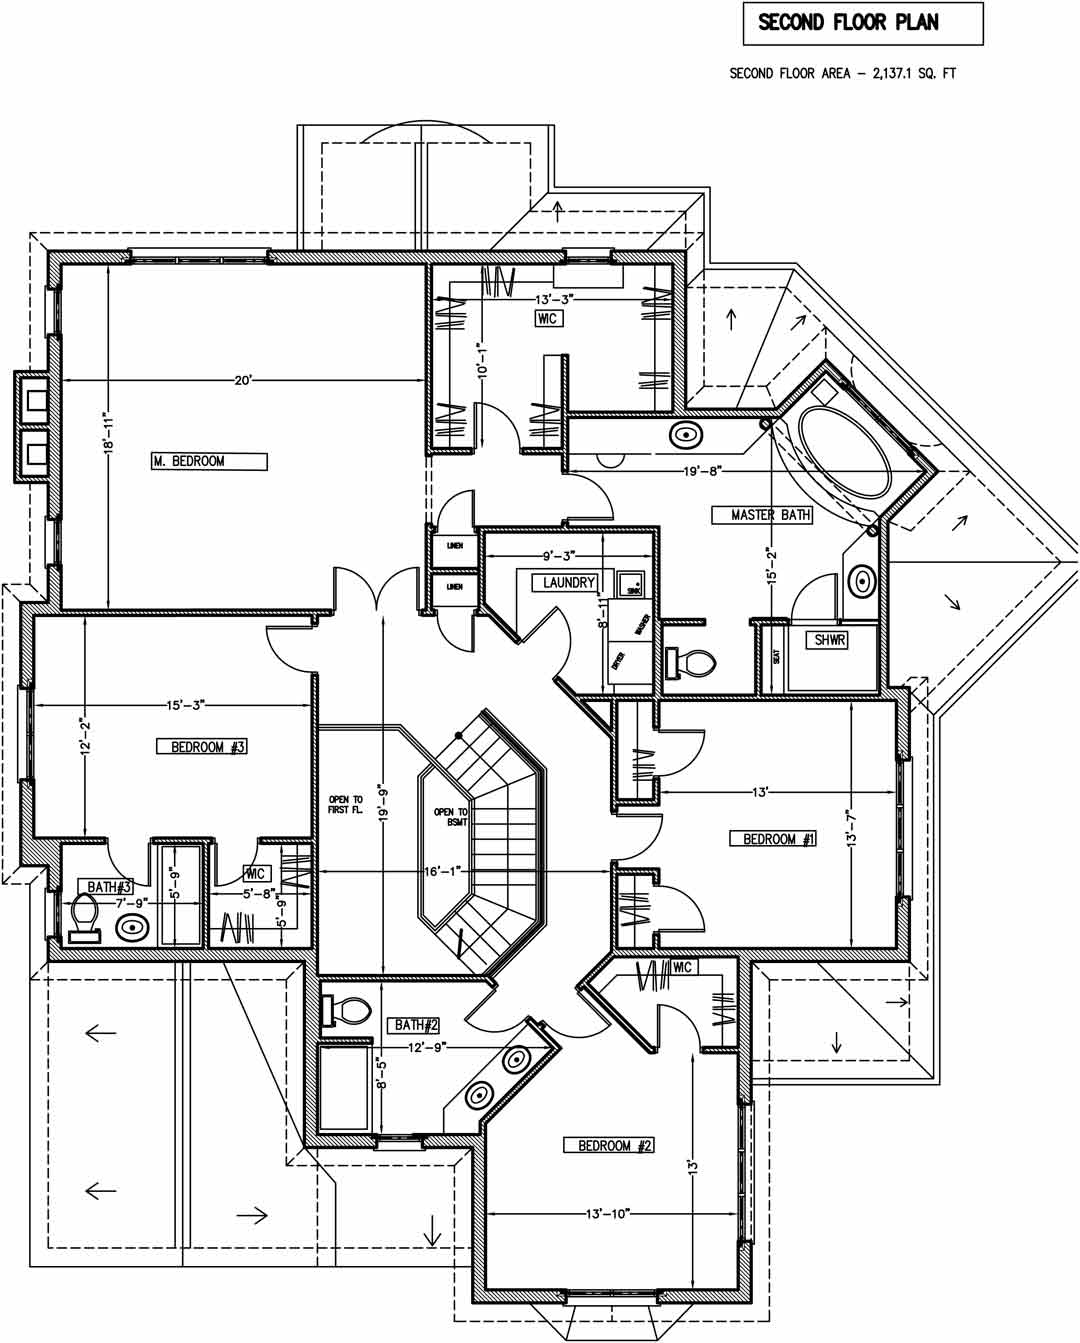 LINNEMAN second floor plan / additions and new homes in Glenview by Greenleaf Developers